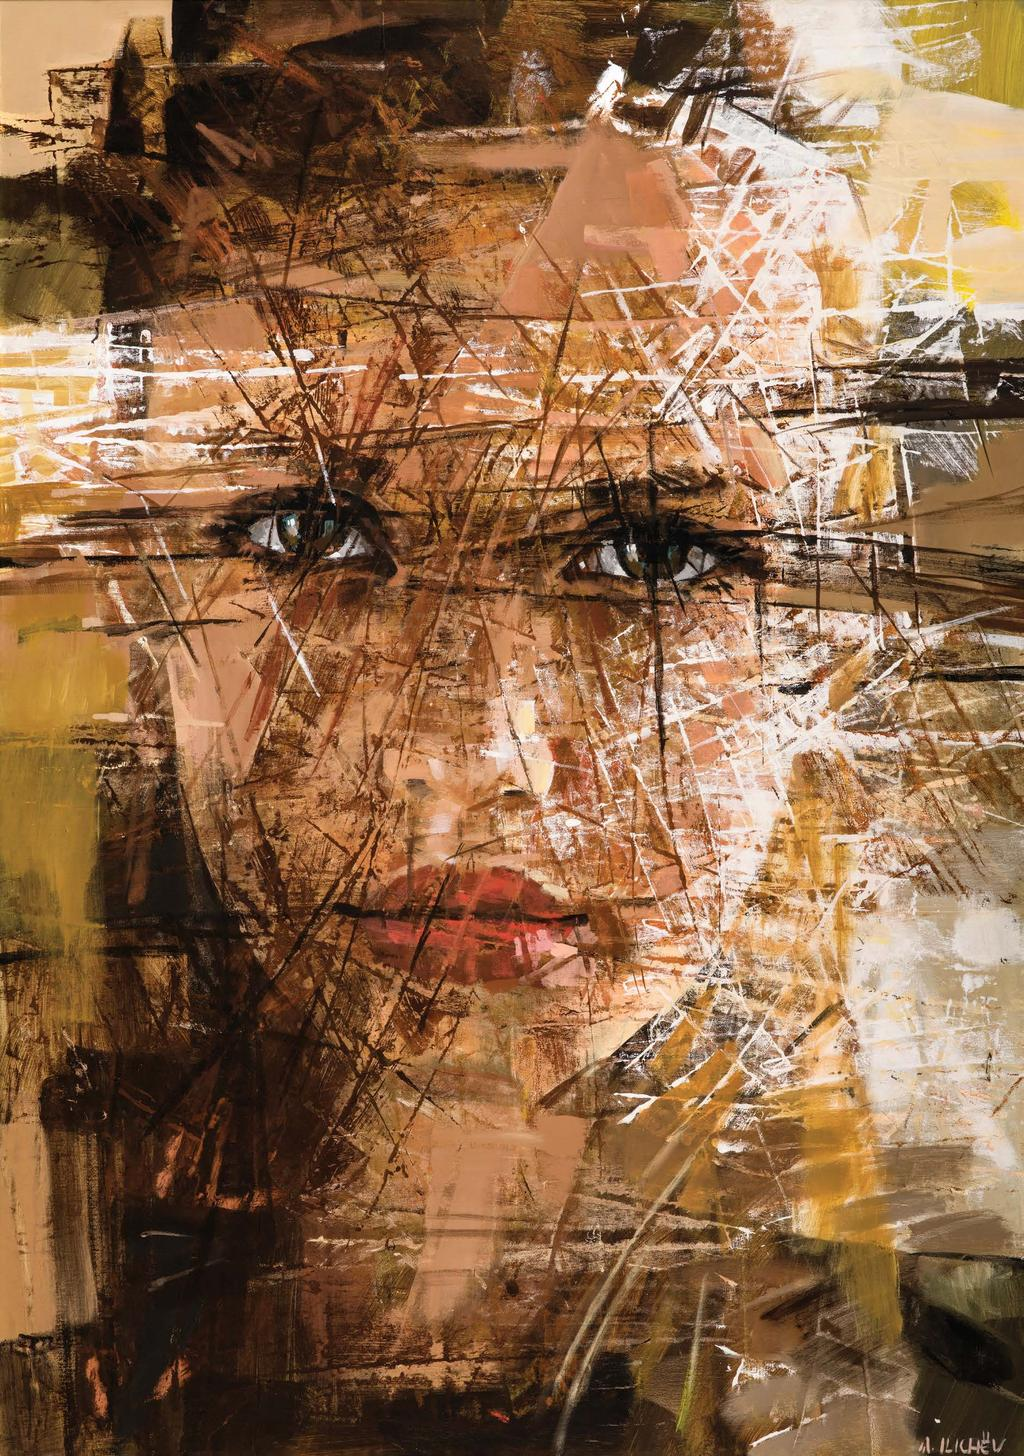 Russia Alexander Ilichev Alexander Ilichev paints portraits using spots of color, lines and dots creating a textural appearance.